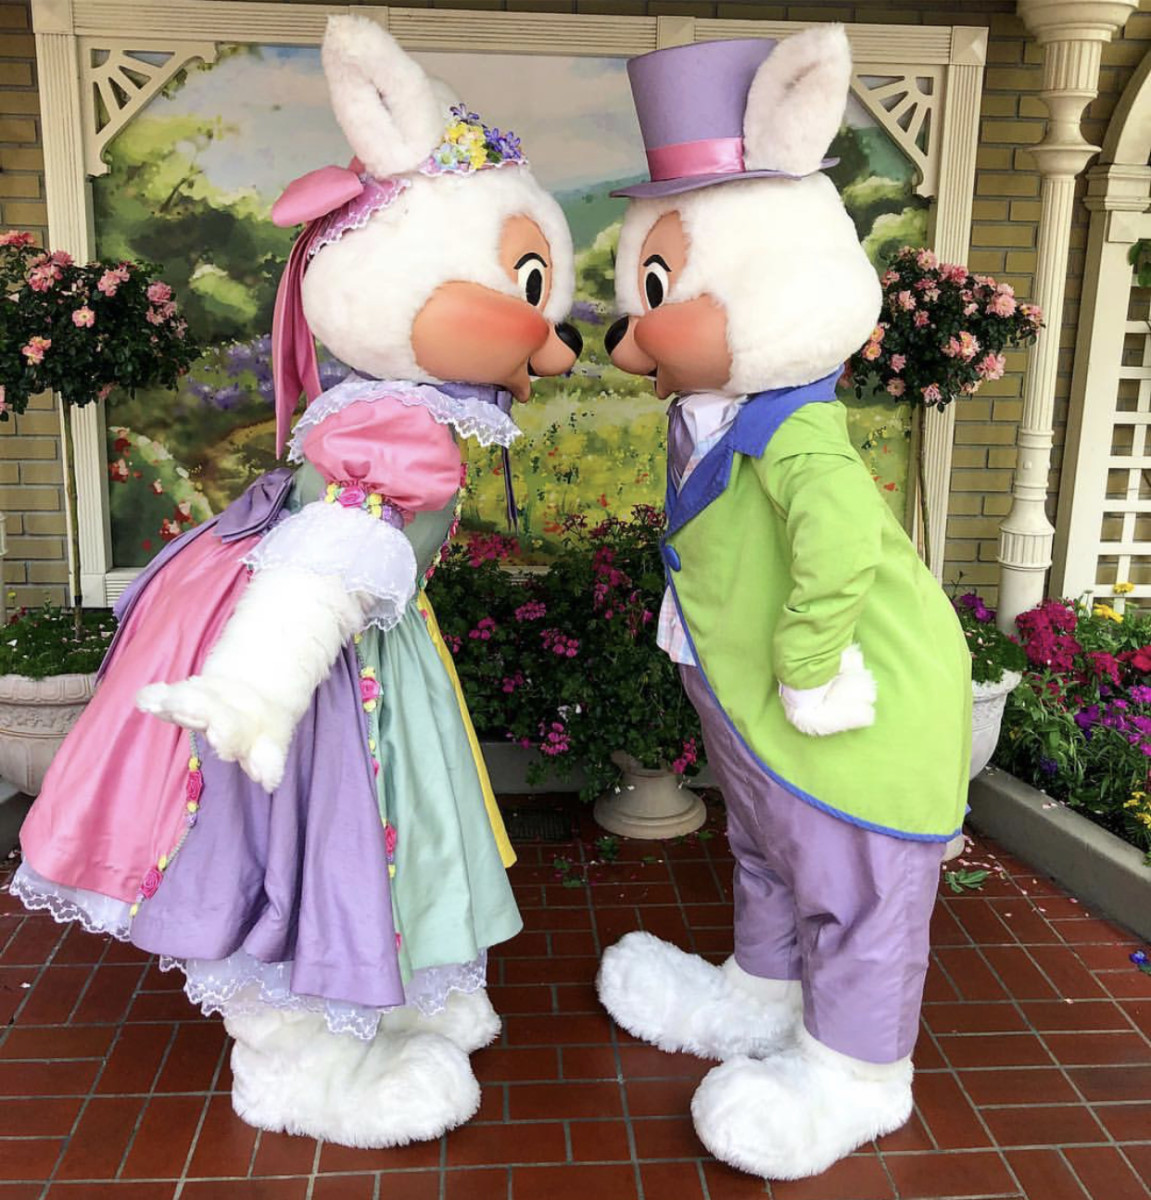 Mr. and Mrs. Easter Bunny appear at Magic Kingdom just in time for Easter 2